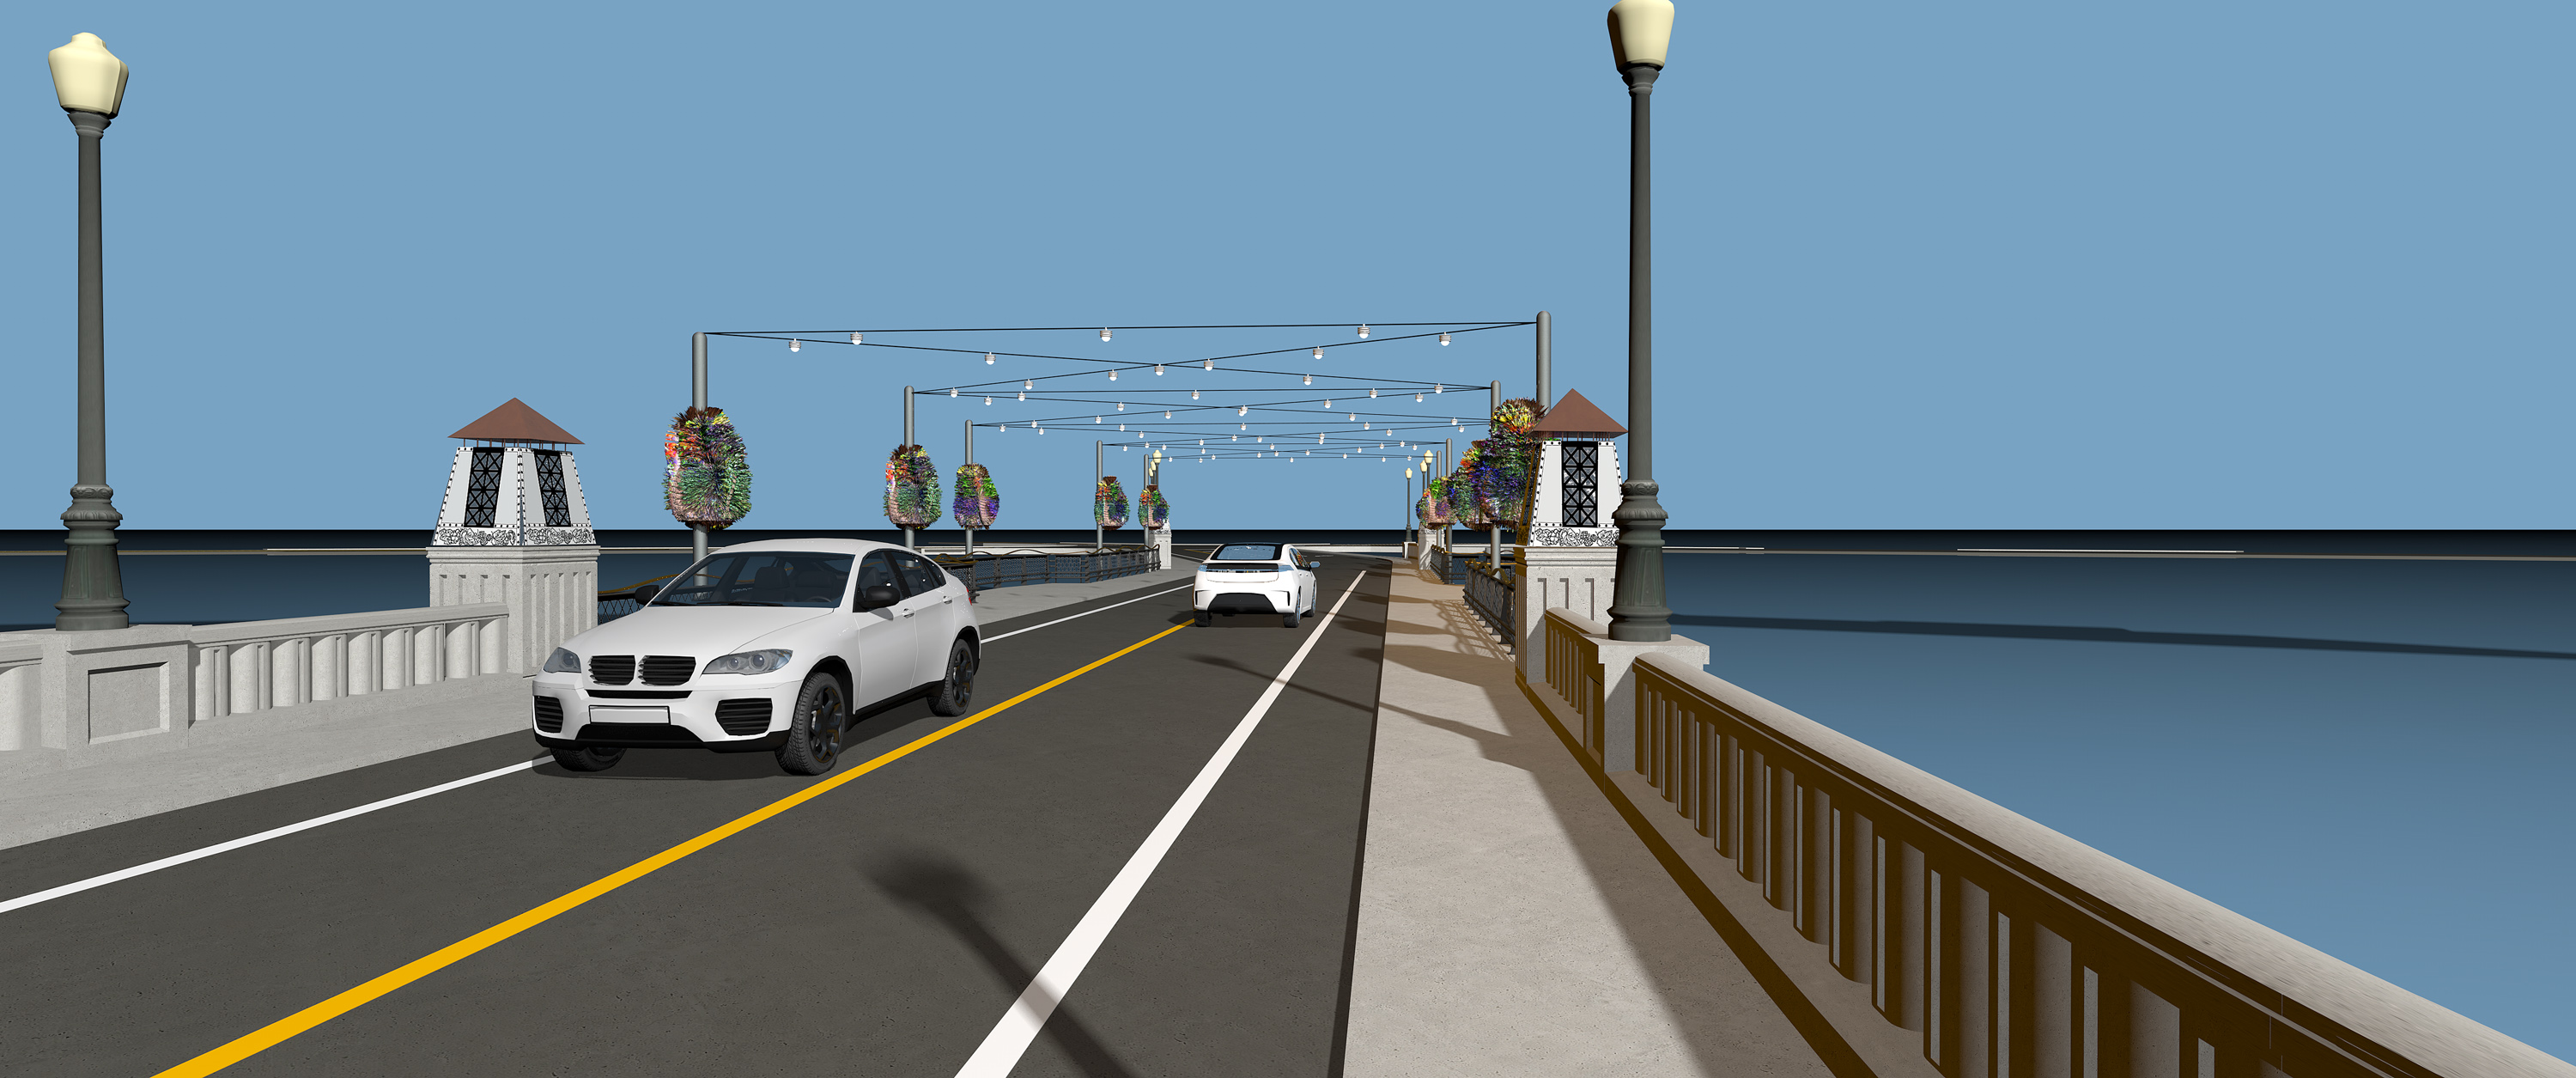 Rendering of new bridge by day with lights, flower baskets and cars on it.